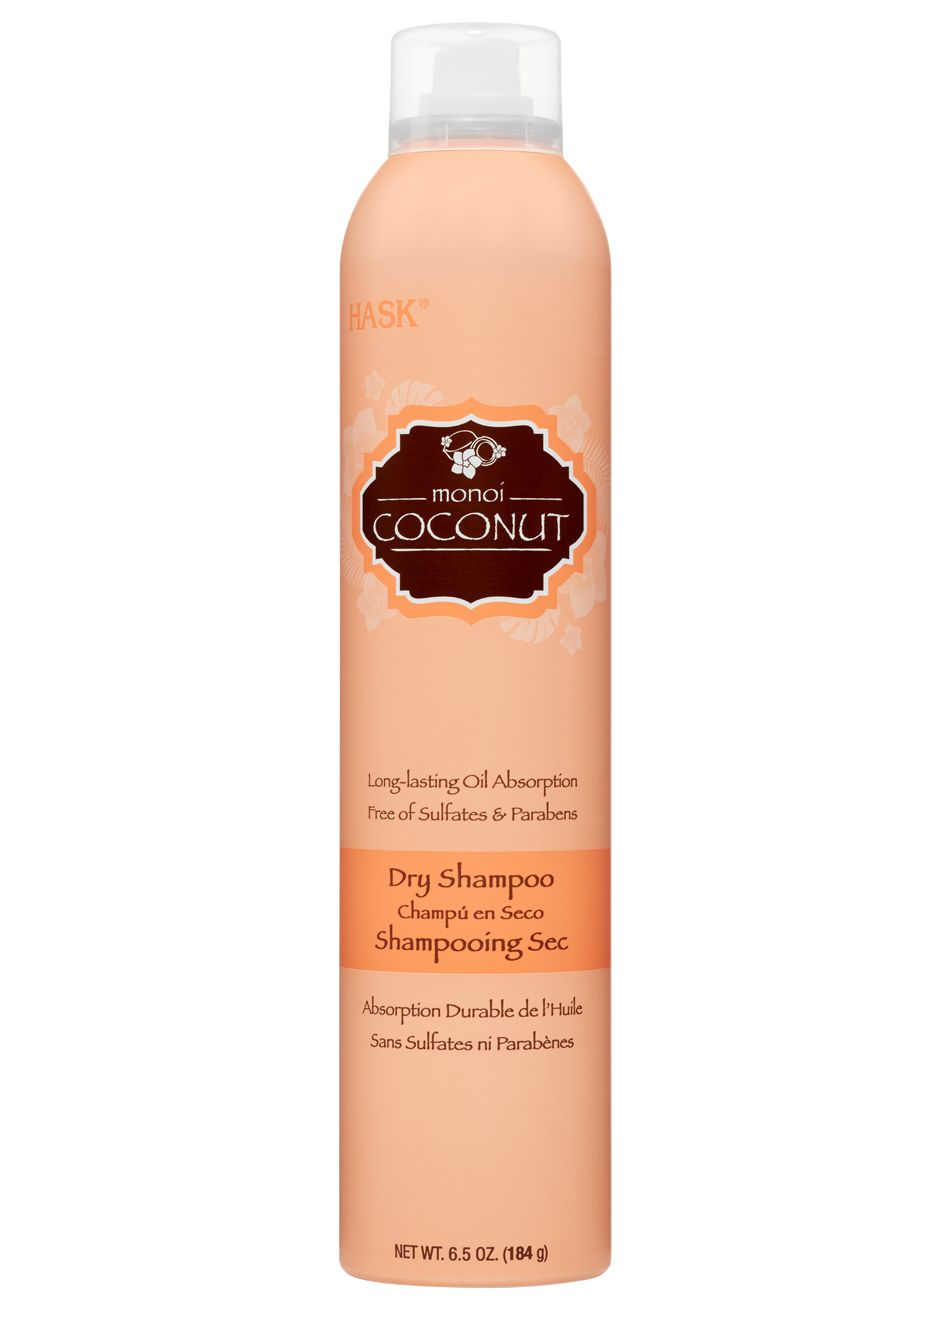 Coconut Dry Shampoo Infused with a tropical coconut scent